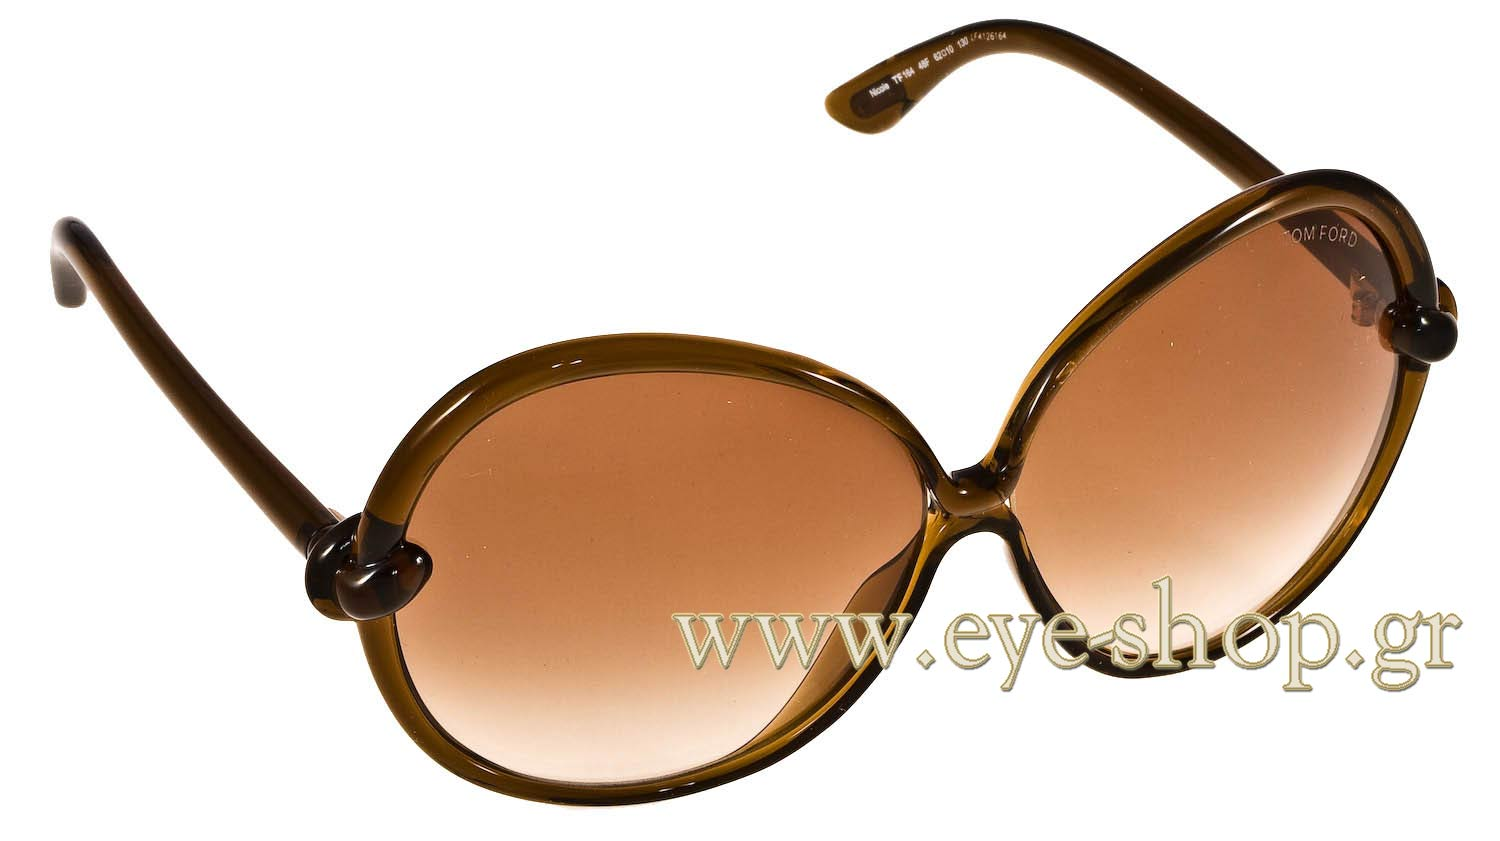 Tom Ford 164/48f tim70BZO